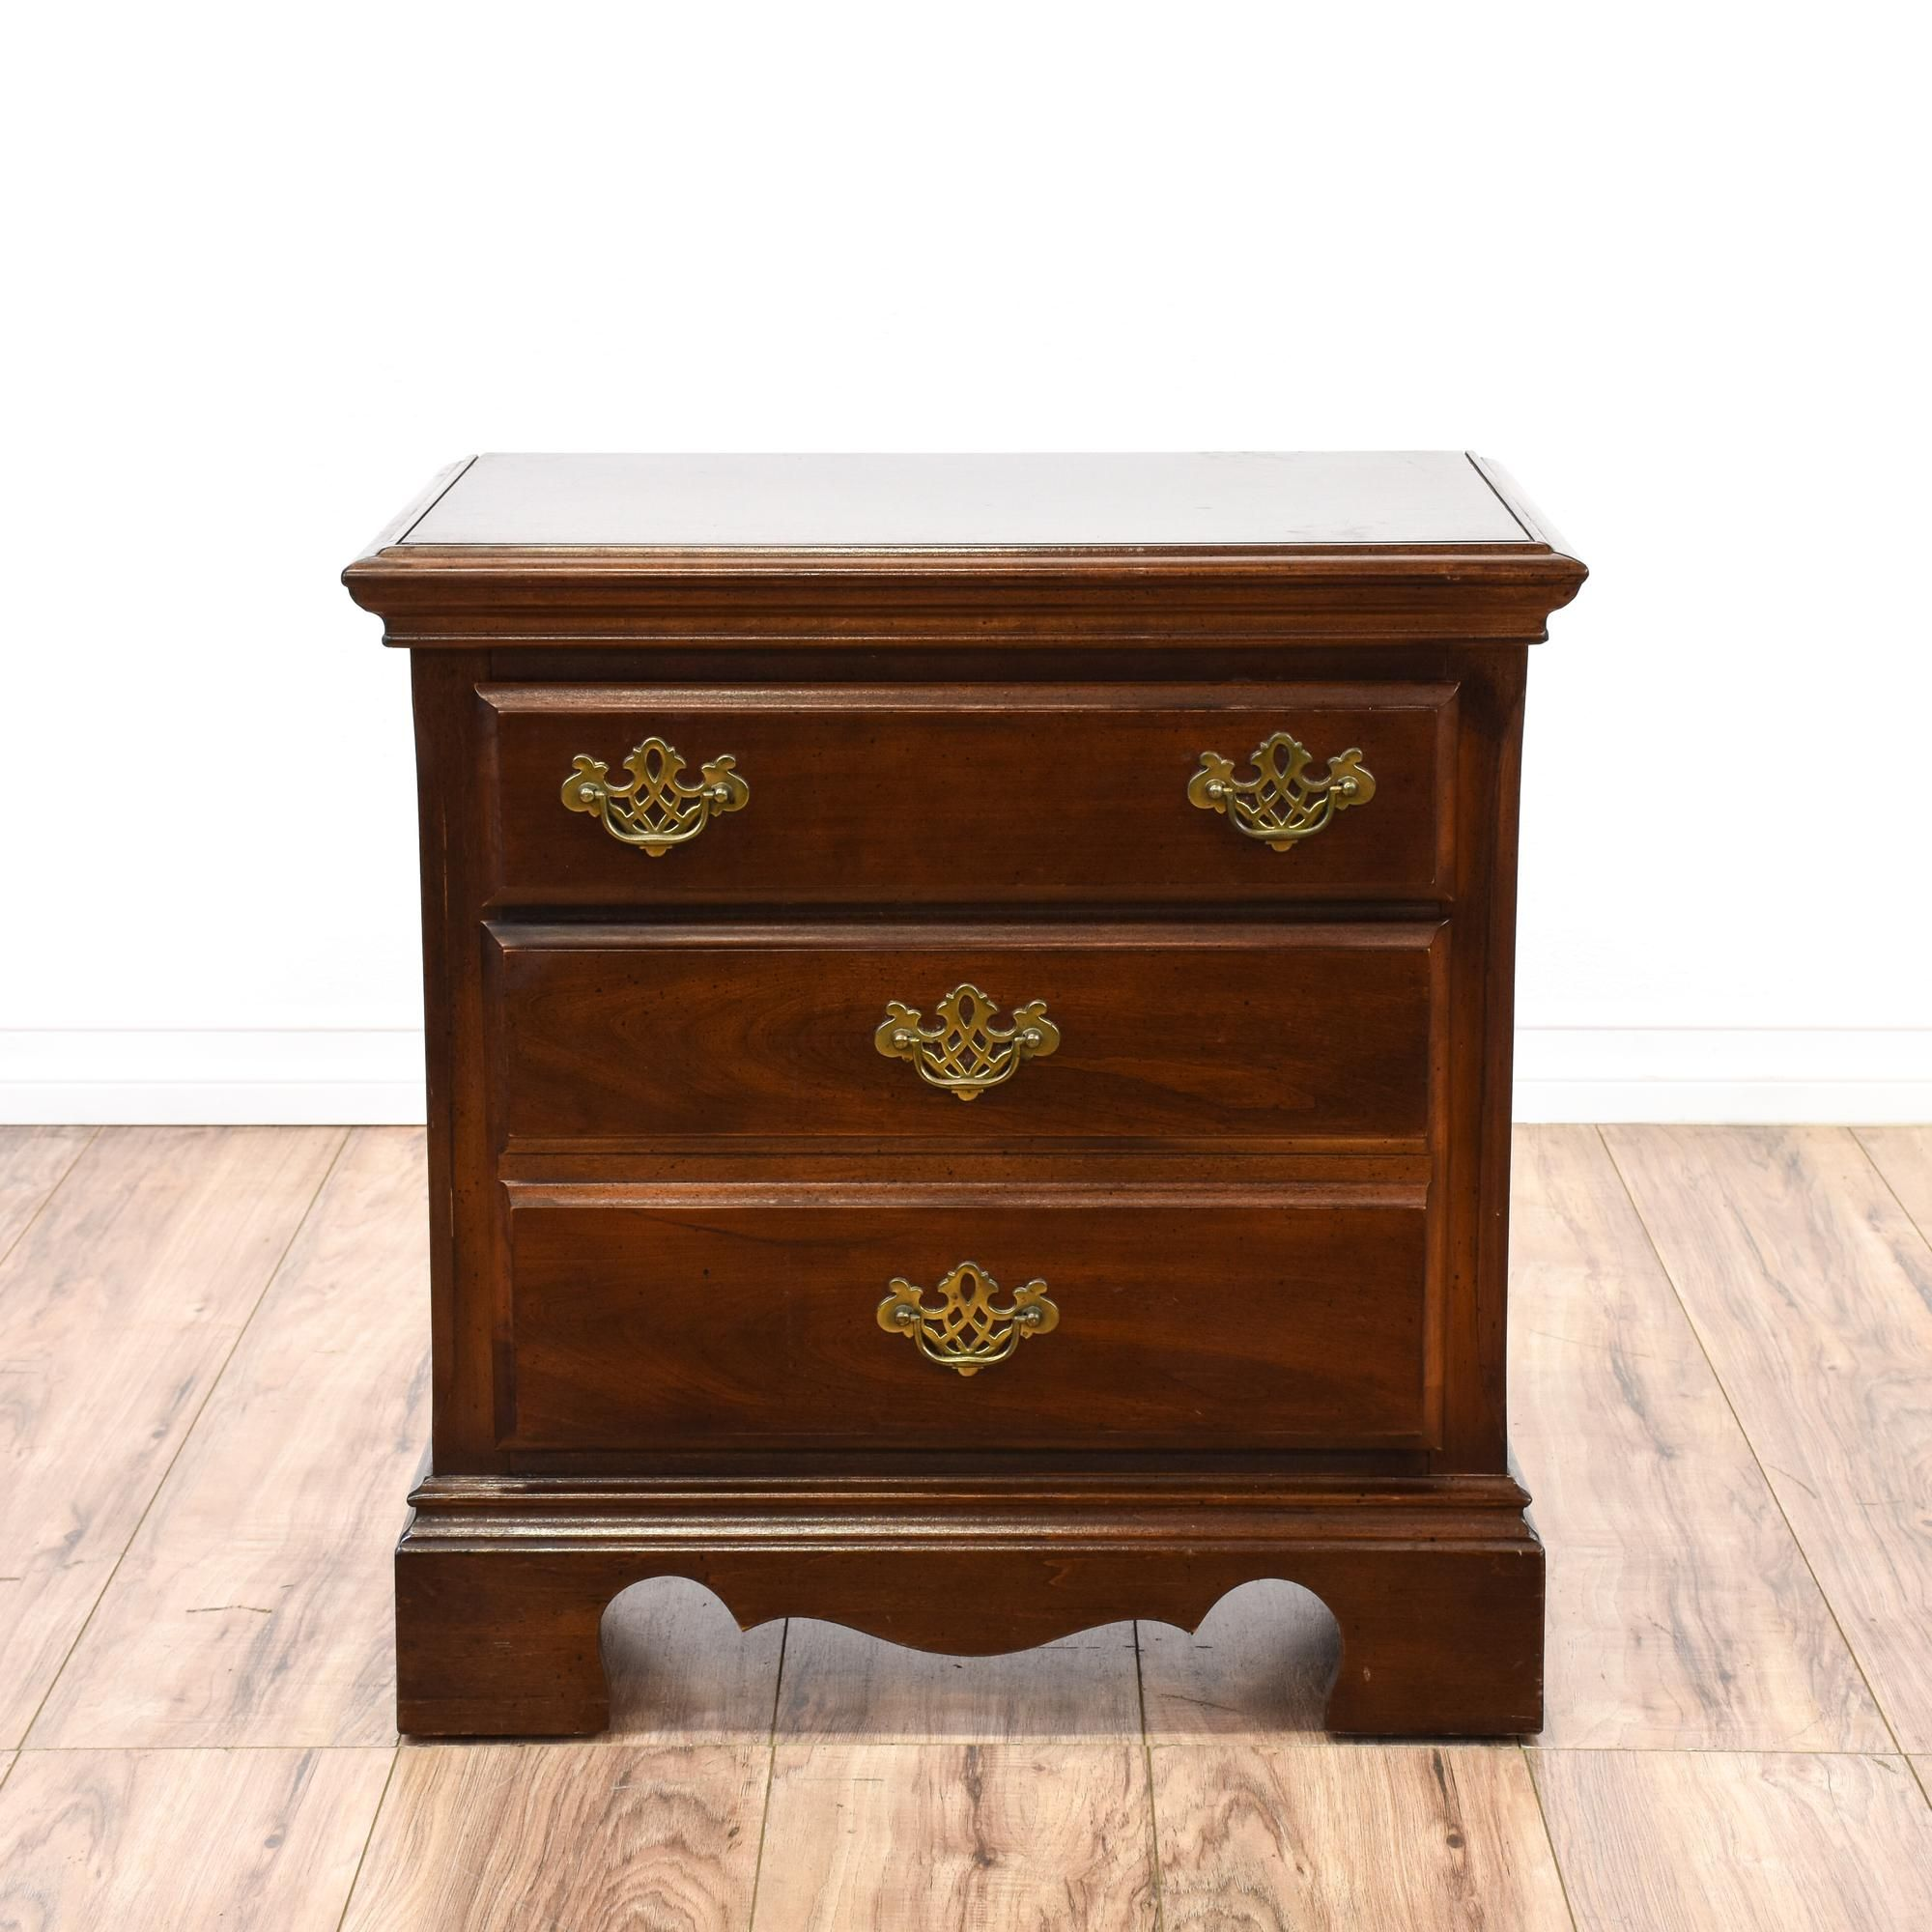 This nightstand is featured in a solid wood with a glossy cherry